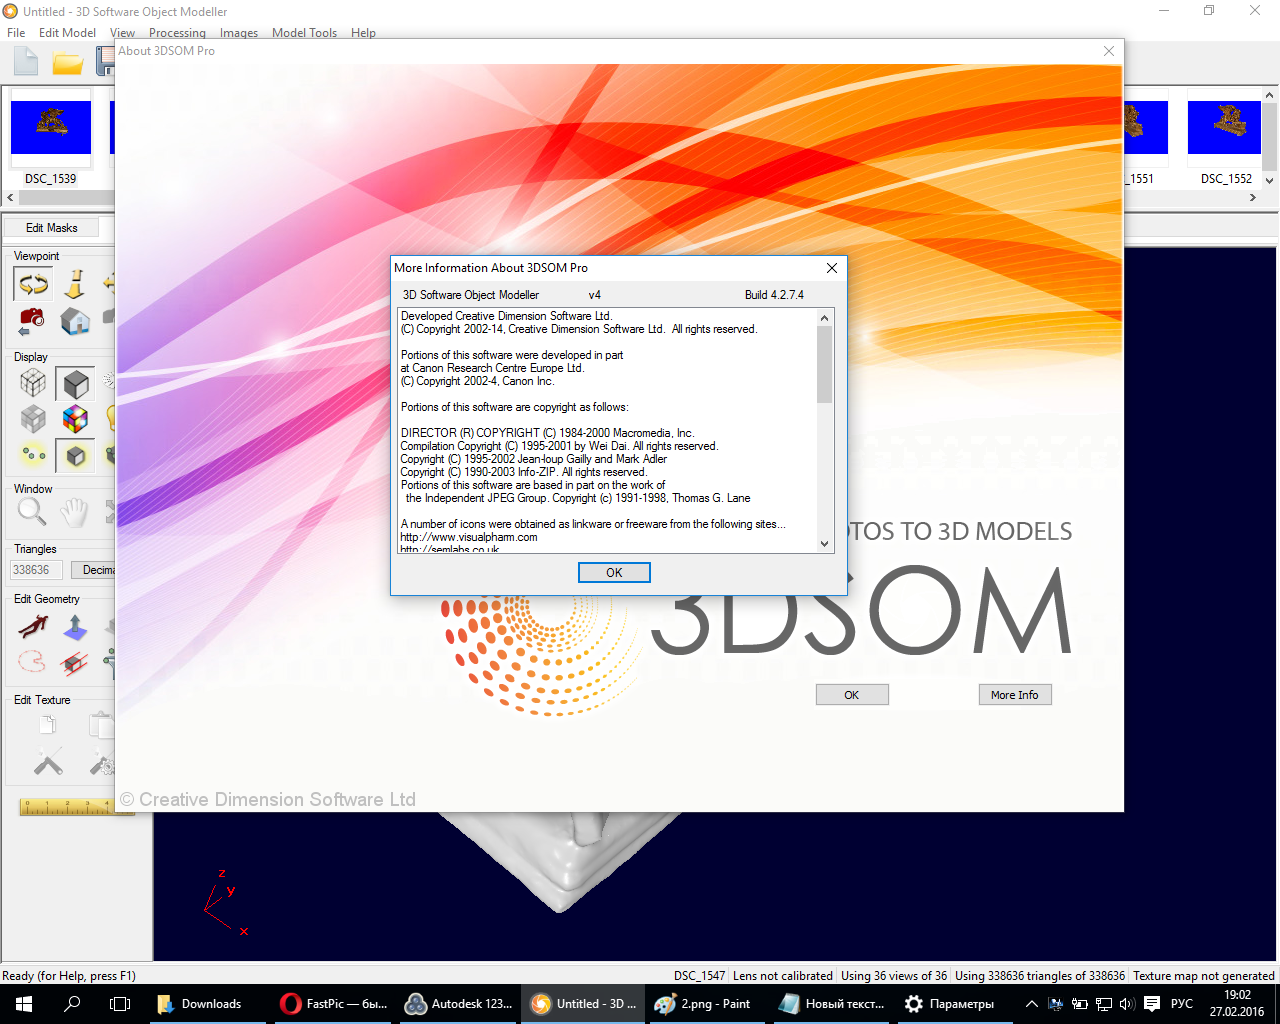 3DSOM Pro v4.2.7.4 x64 full license